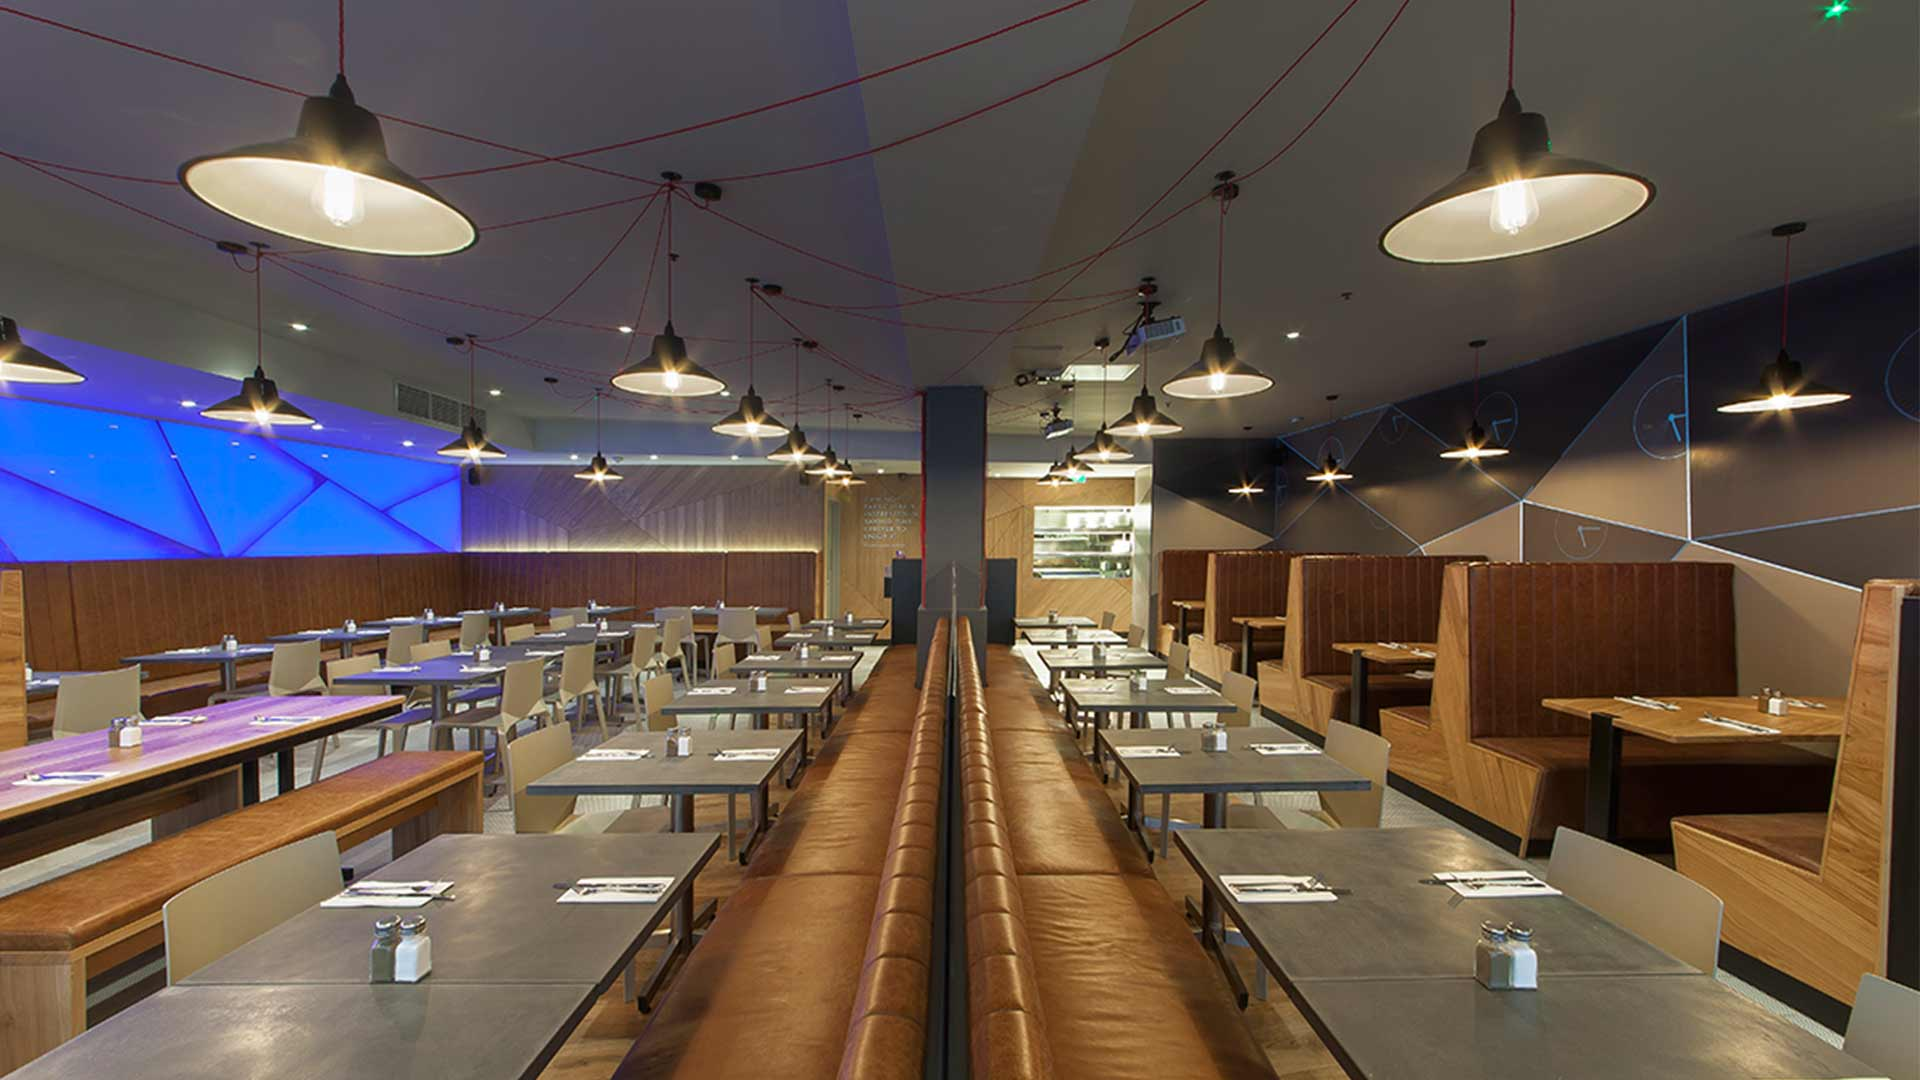 Lighting Scheme 24 Hour Cafe Diner Bench Seating Design Nulty